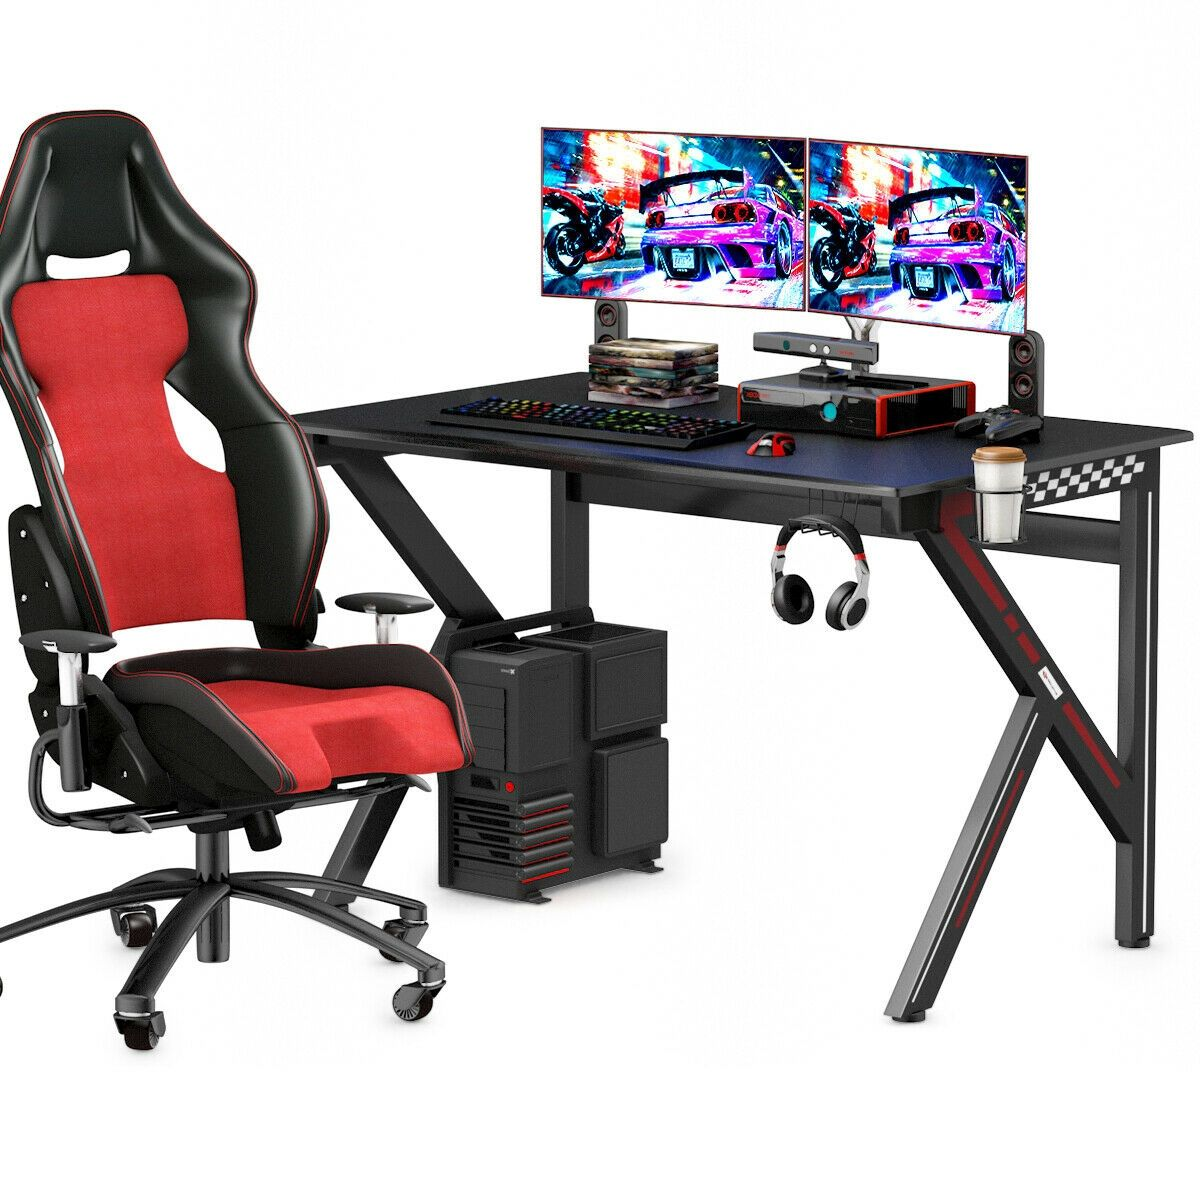 K-Shaped E-Sports Gaming Desk Gamers Computer Table #gamingdesk